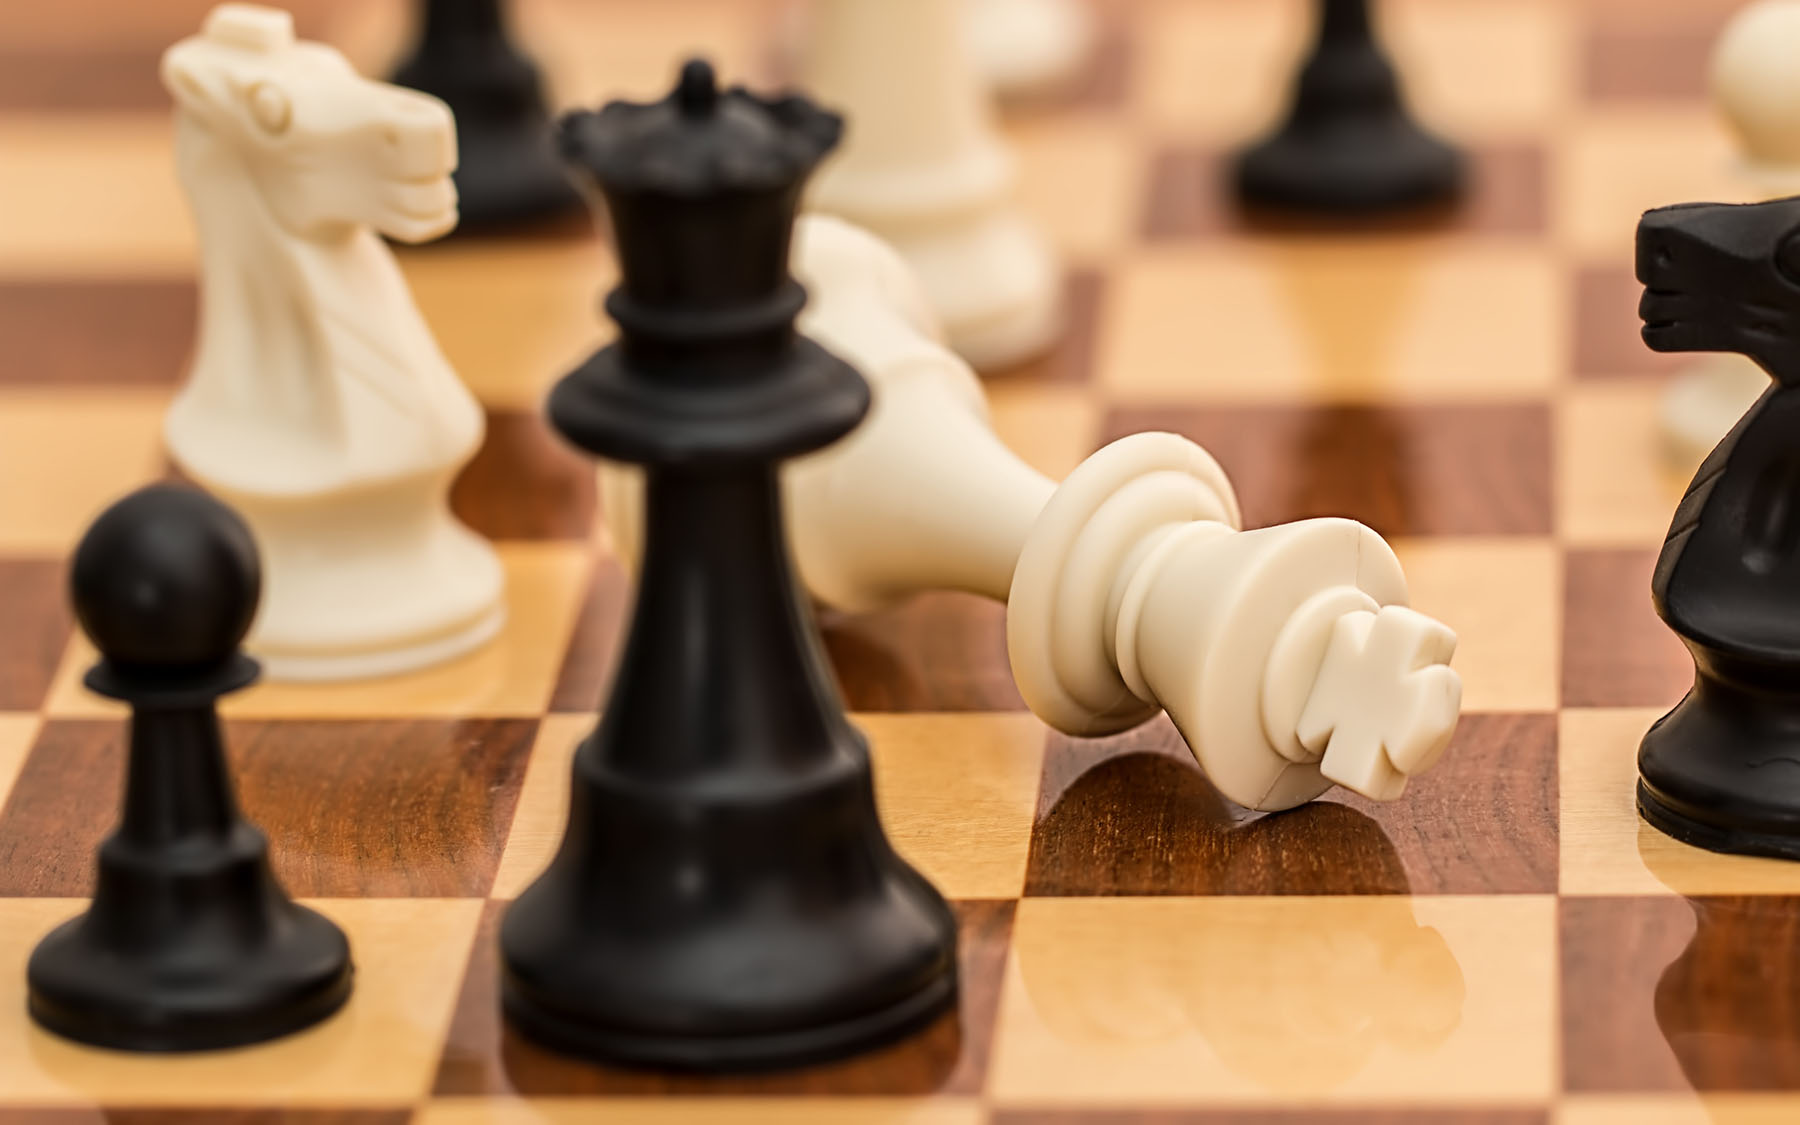 Chess and science mix for a good cause at Cold Spring Harbor